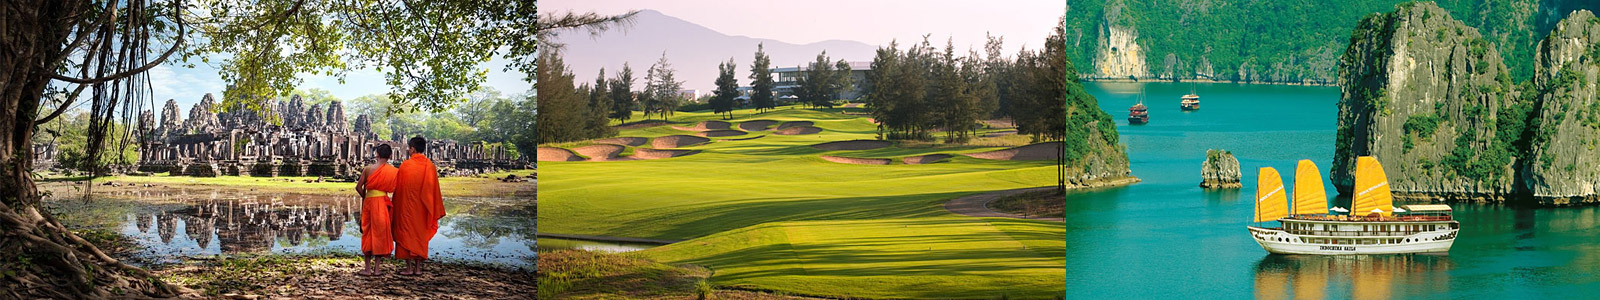 Golf, Temples & Tombs ~ Thailand, Cambodia & Vietnam